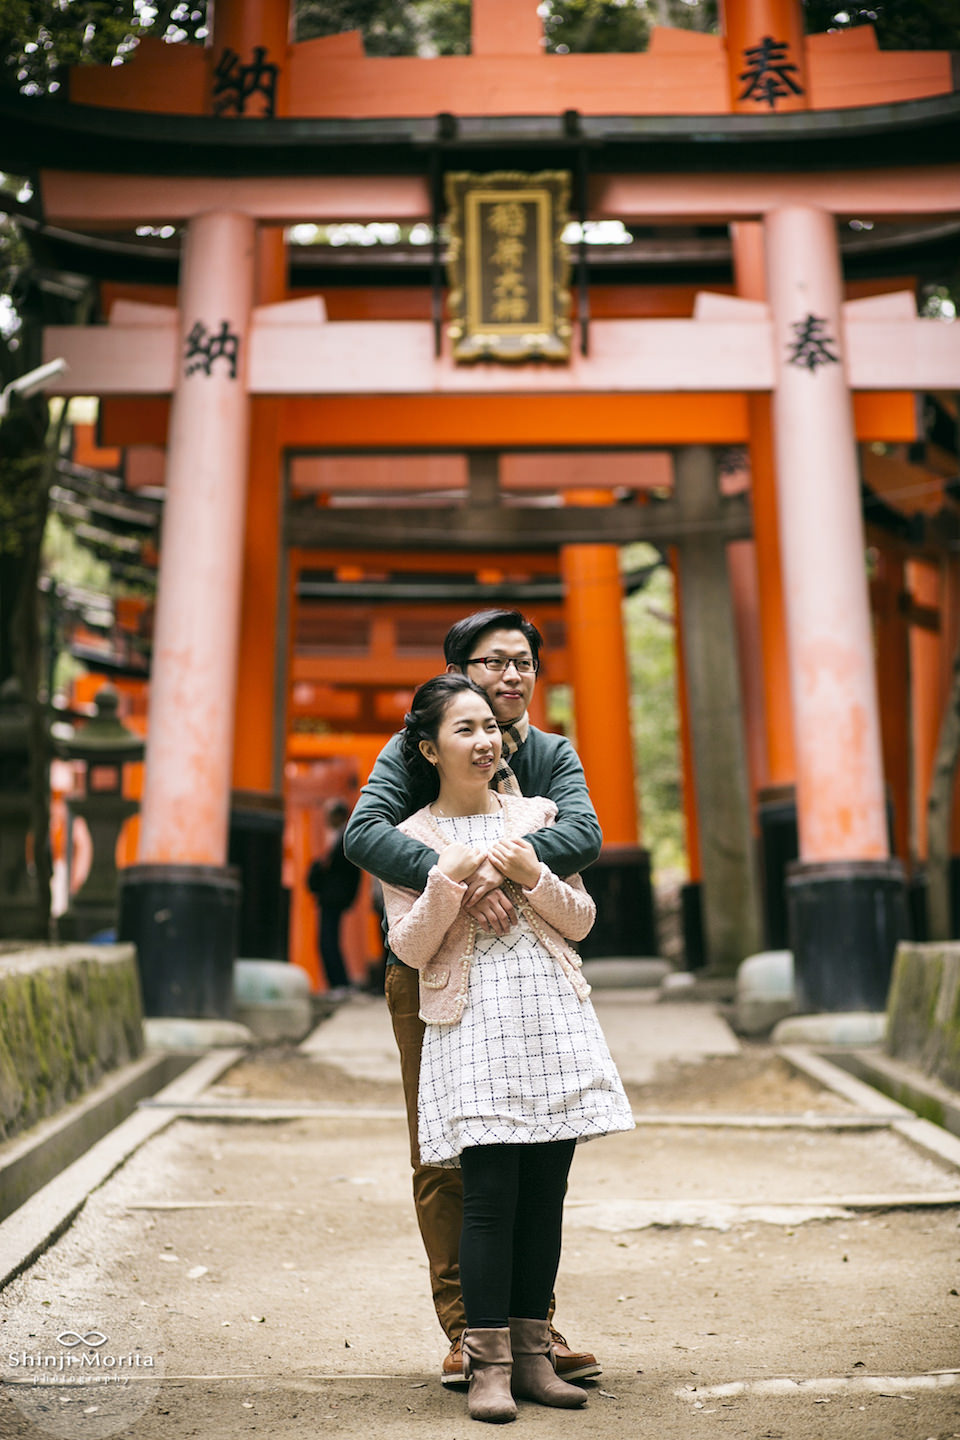 A couple hugging in front of Fushimi inari shrine in Kyoto